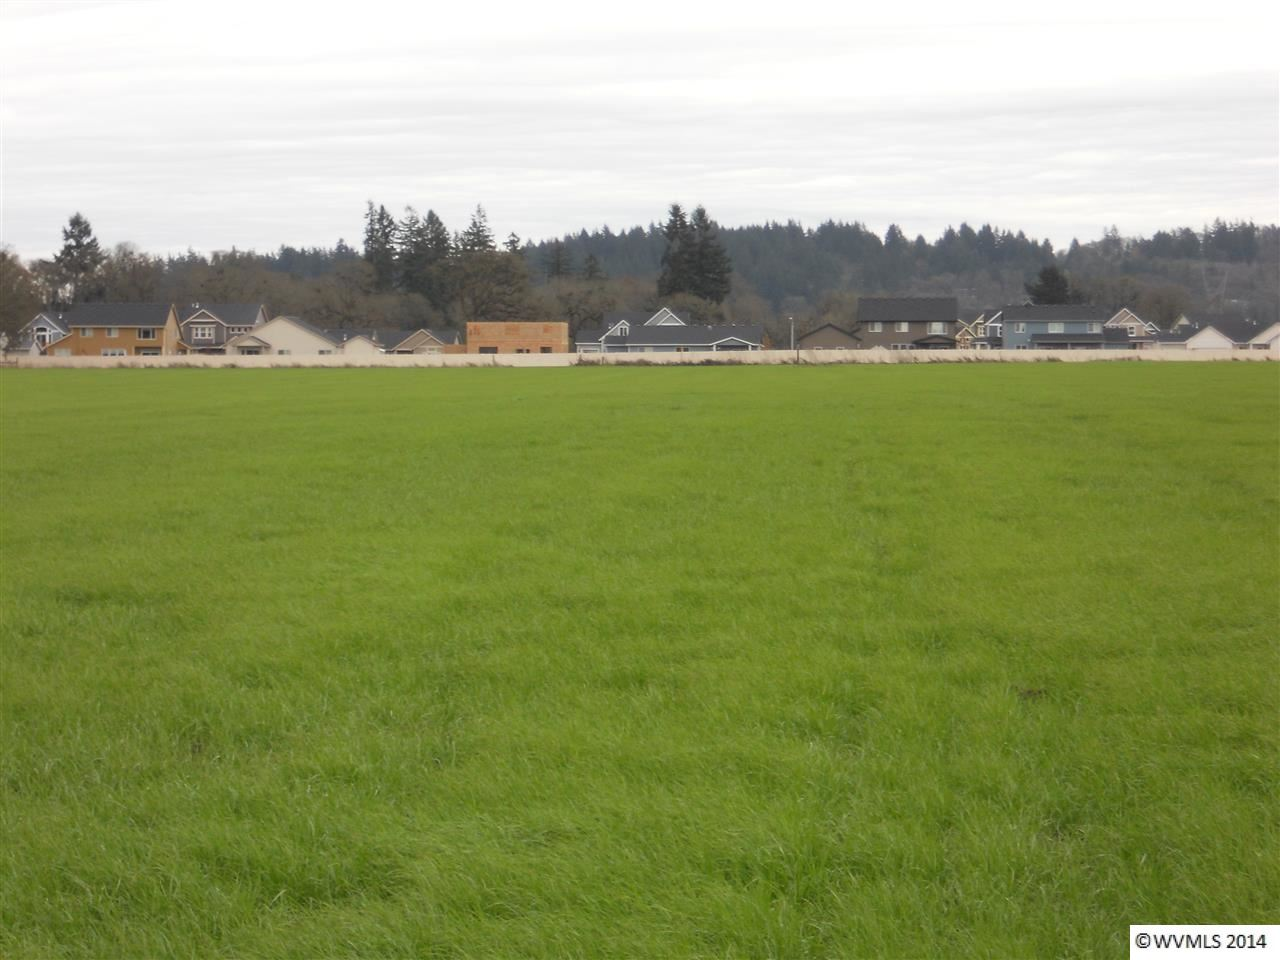 Image of Acreage for Sale near Albany, Oregon, in Linn county: 28.97 acres